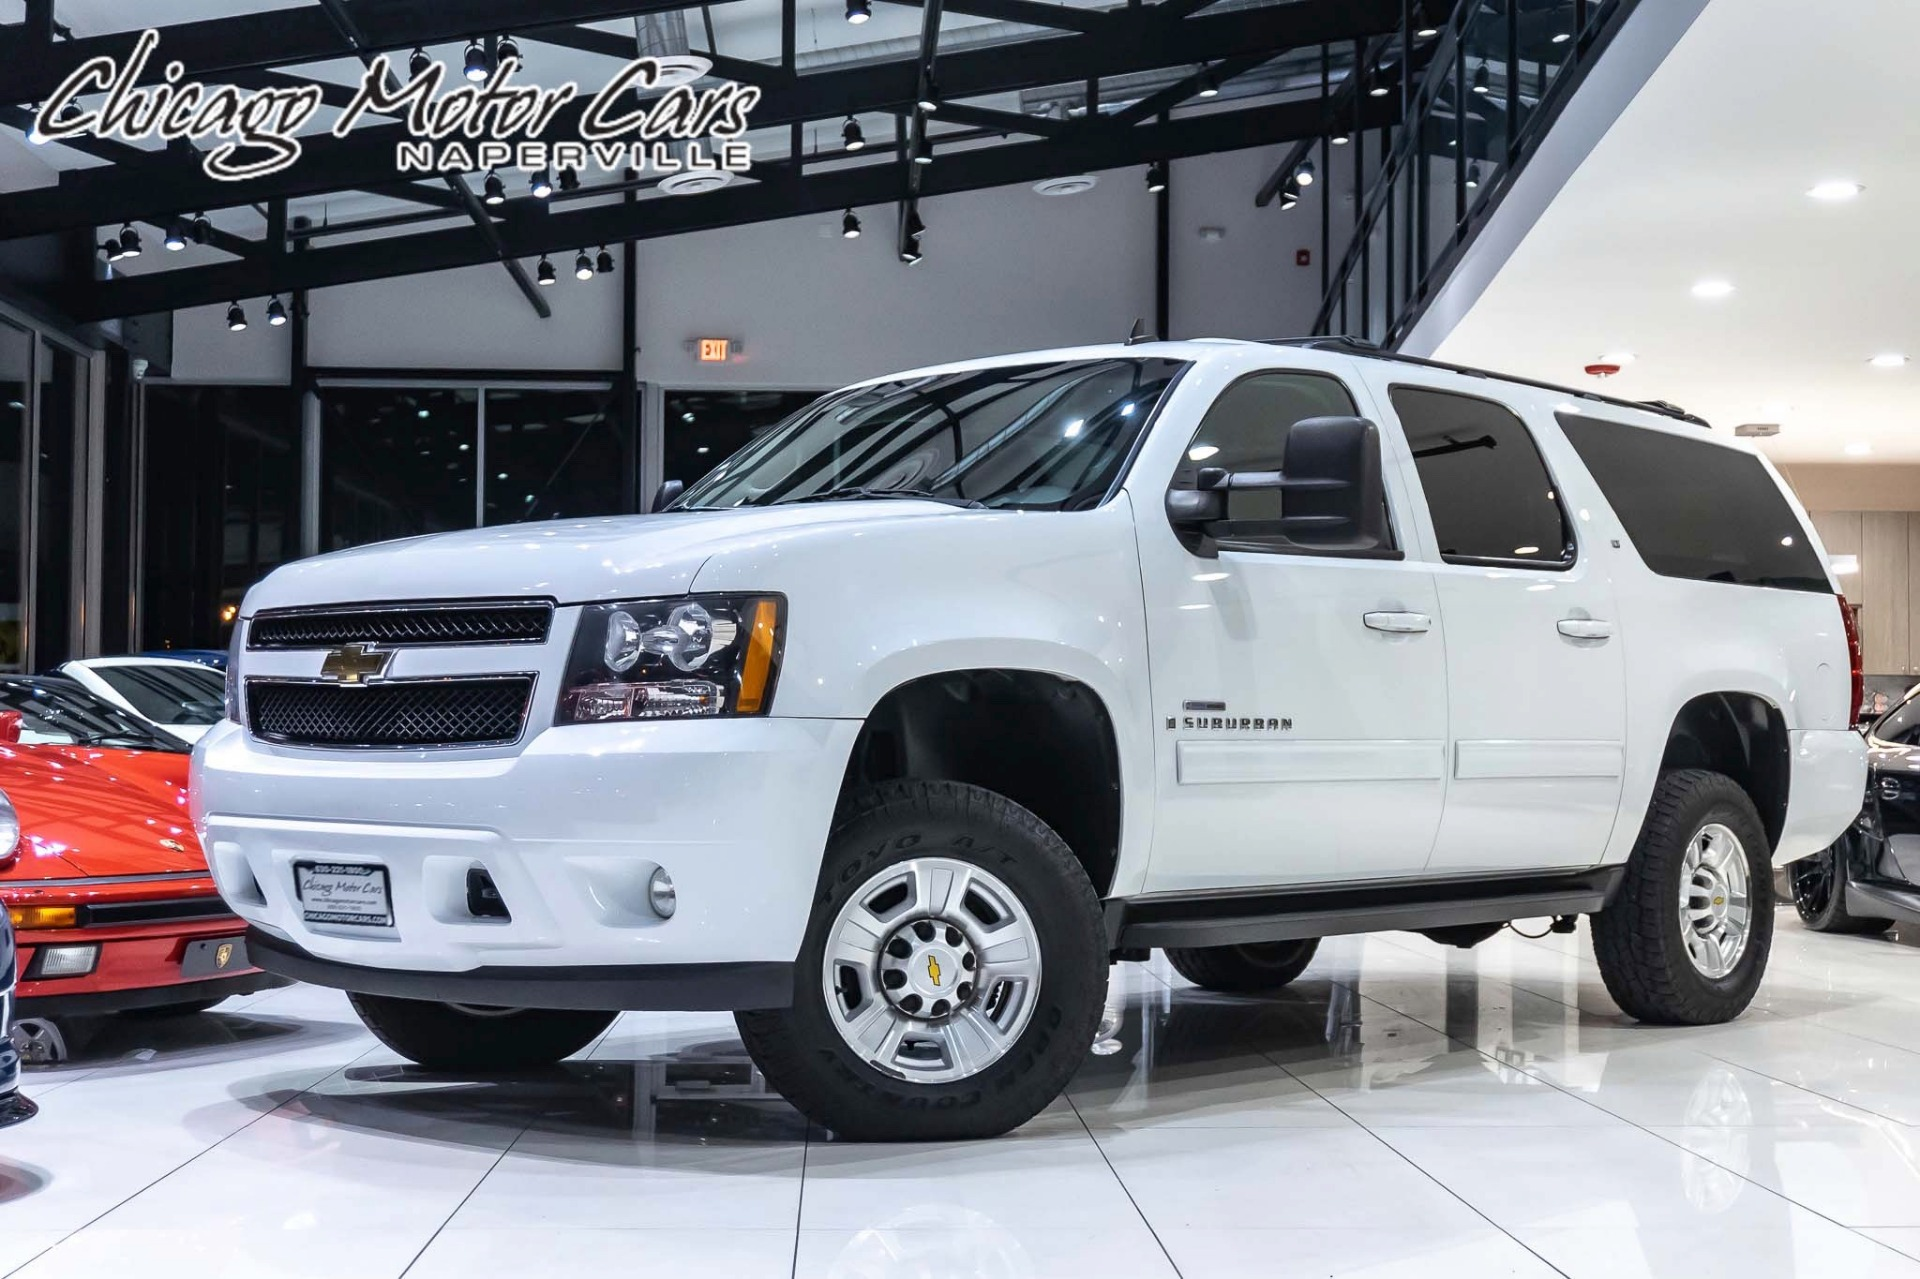 Used 2009 Chevrolet Suburban 2500 W 2lt Lmm Duramax Diesel Conversion For Sale 41 800 Chicago Motor Cars Stock 9r251208